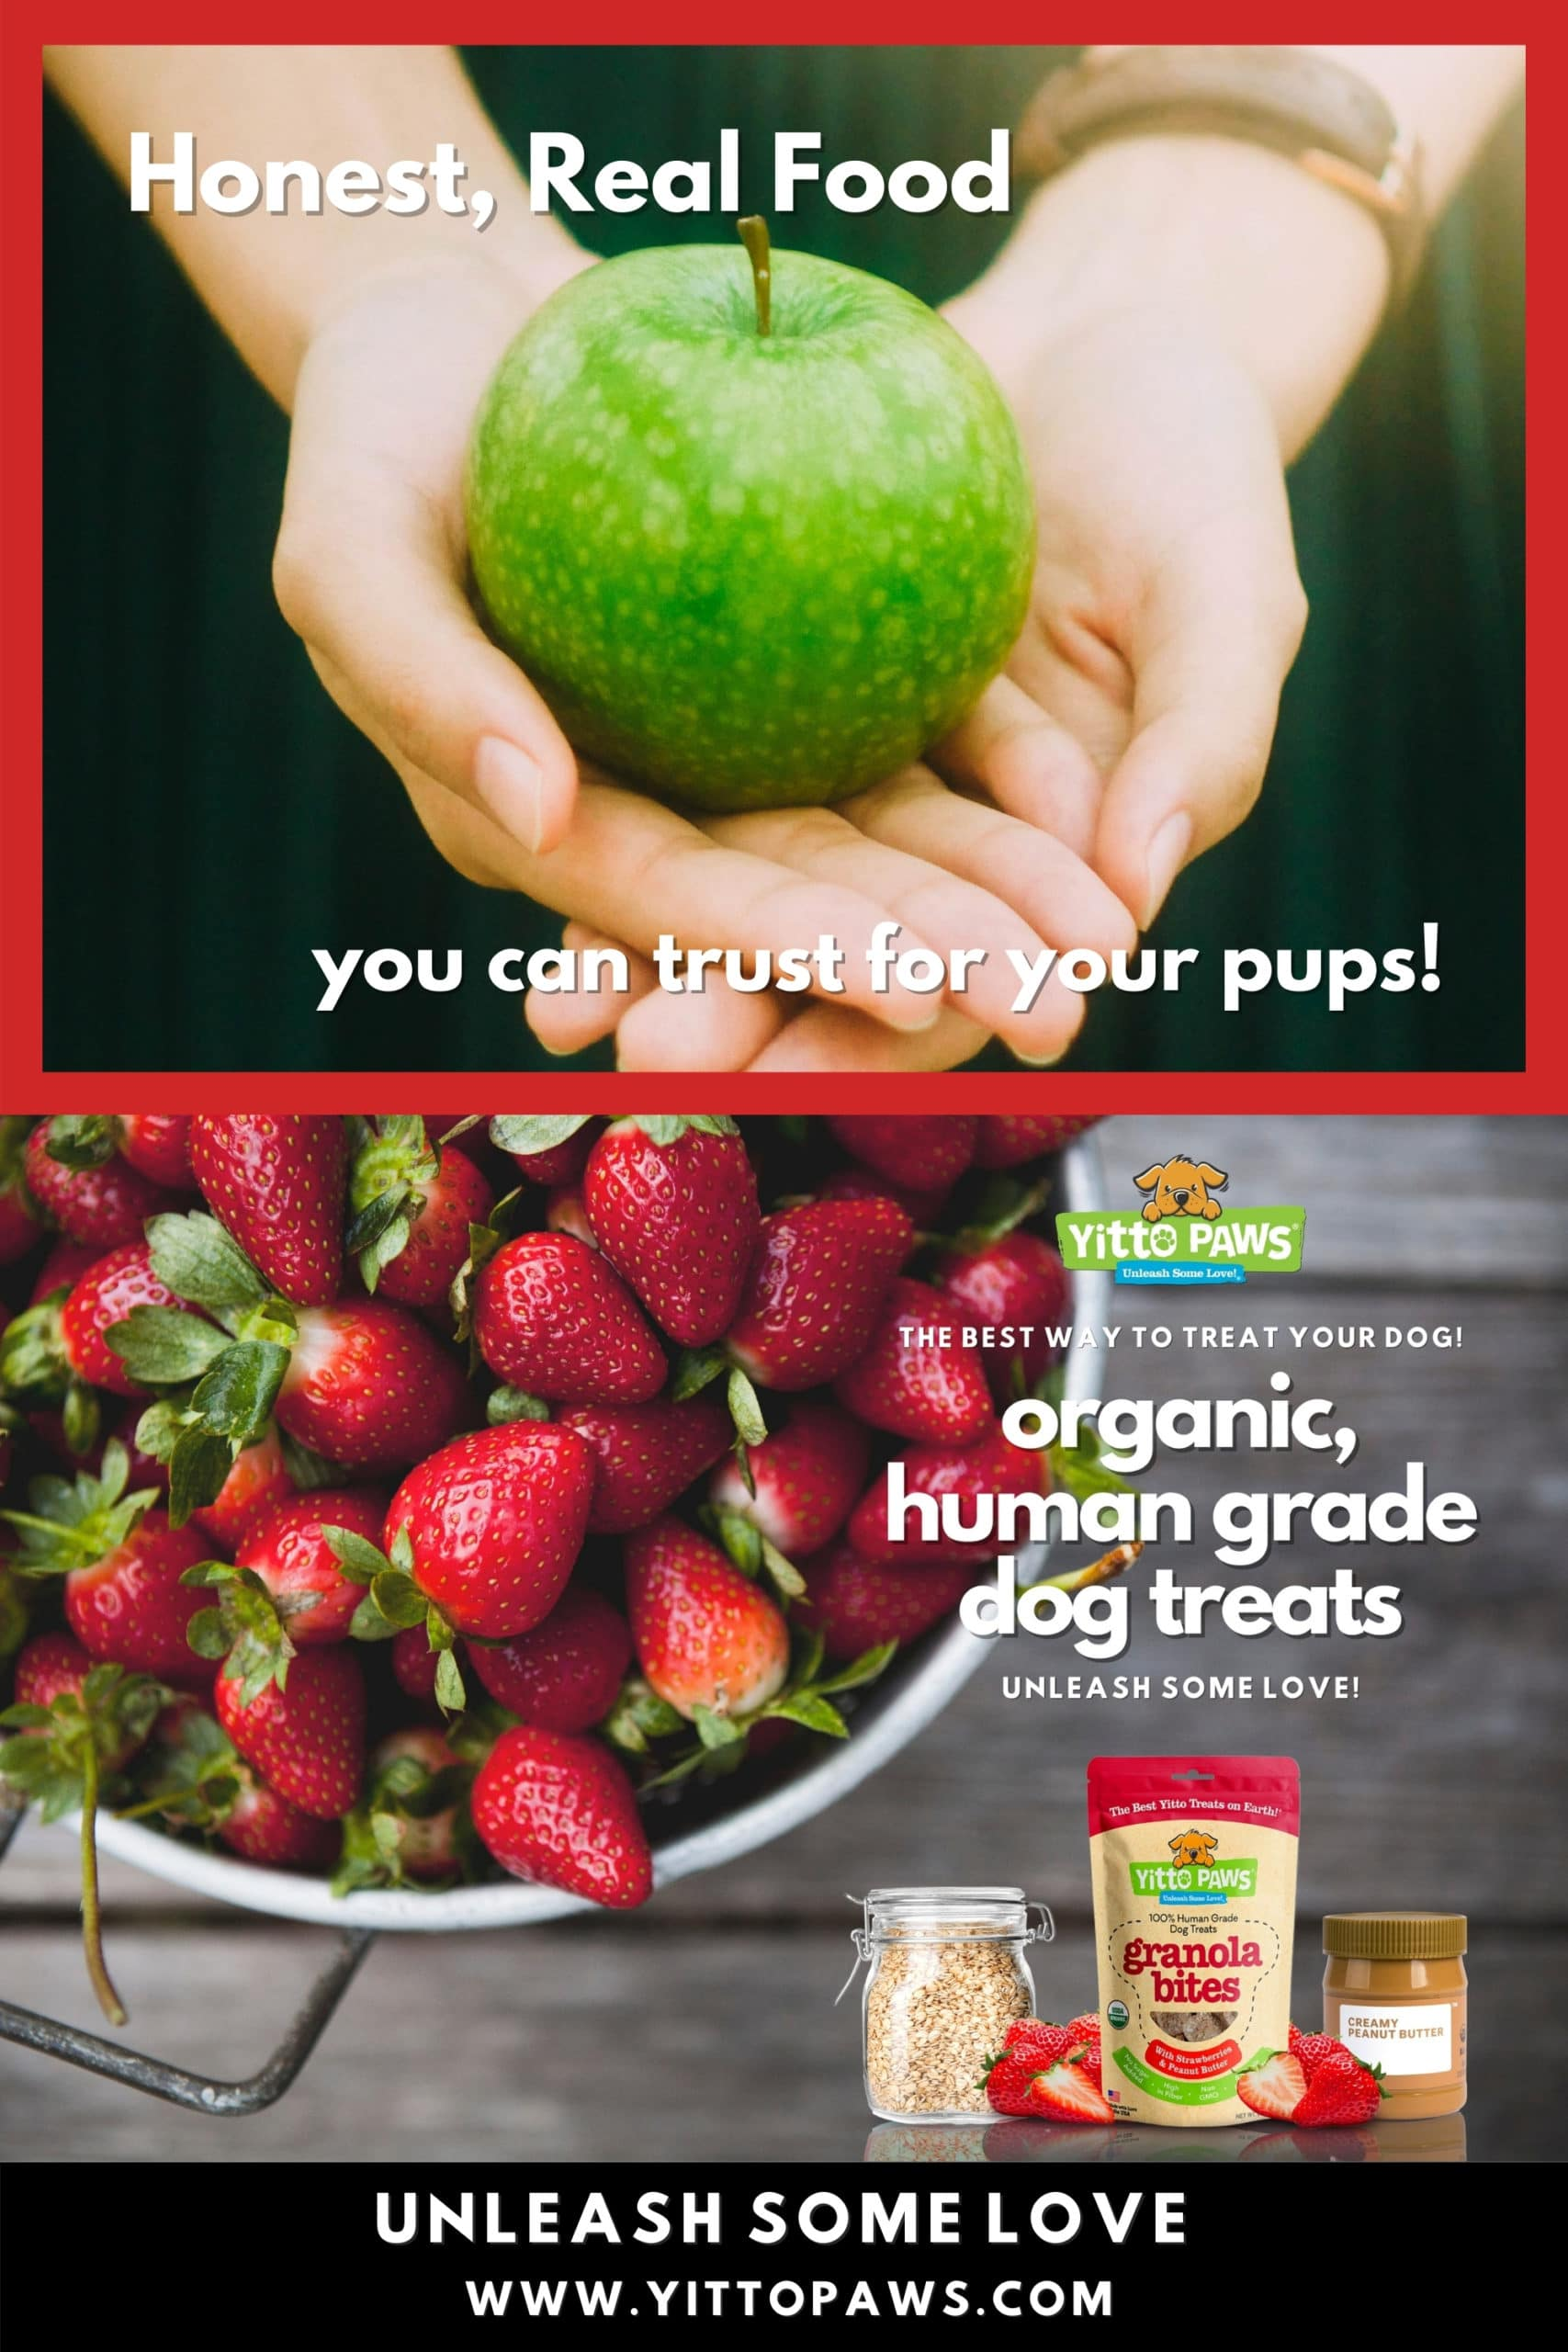 Your Dog deserves honest food you can trust